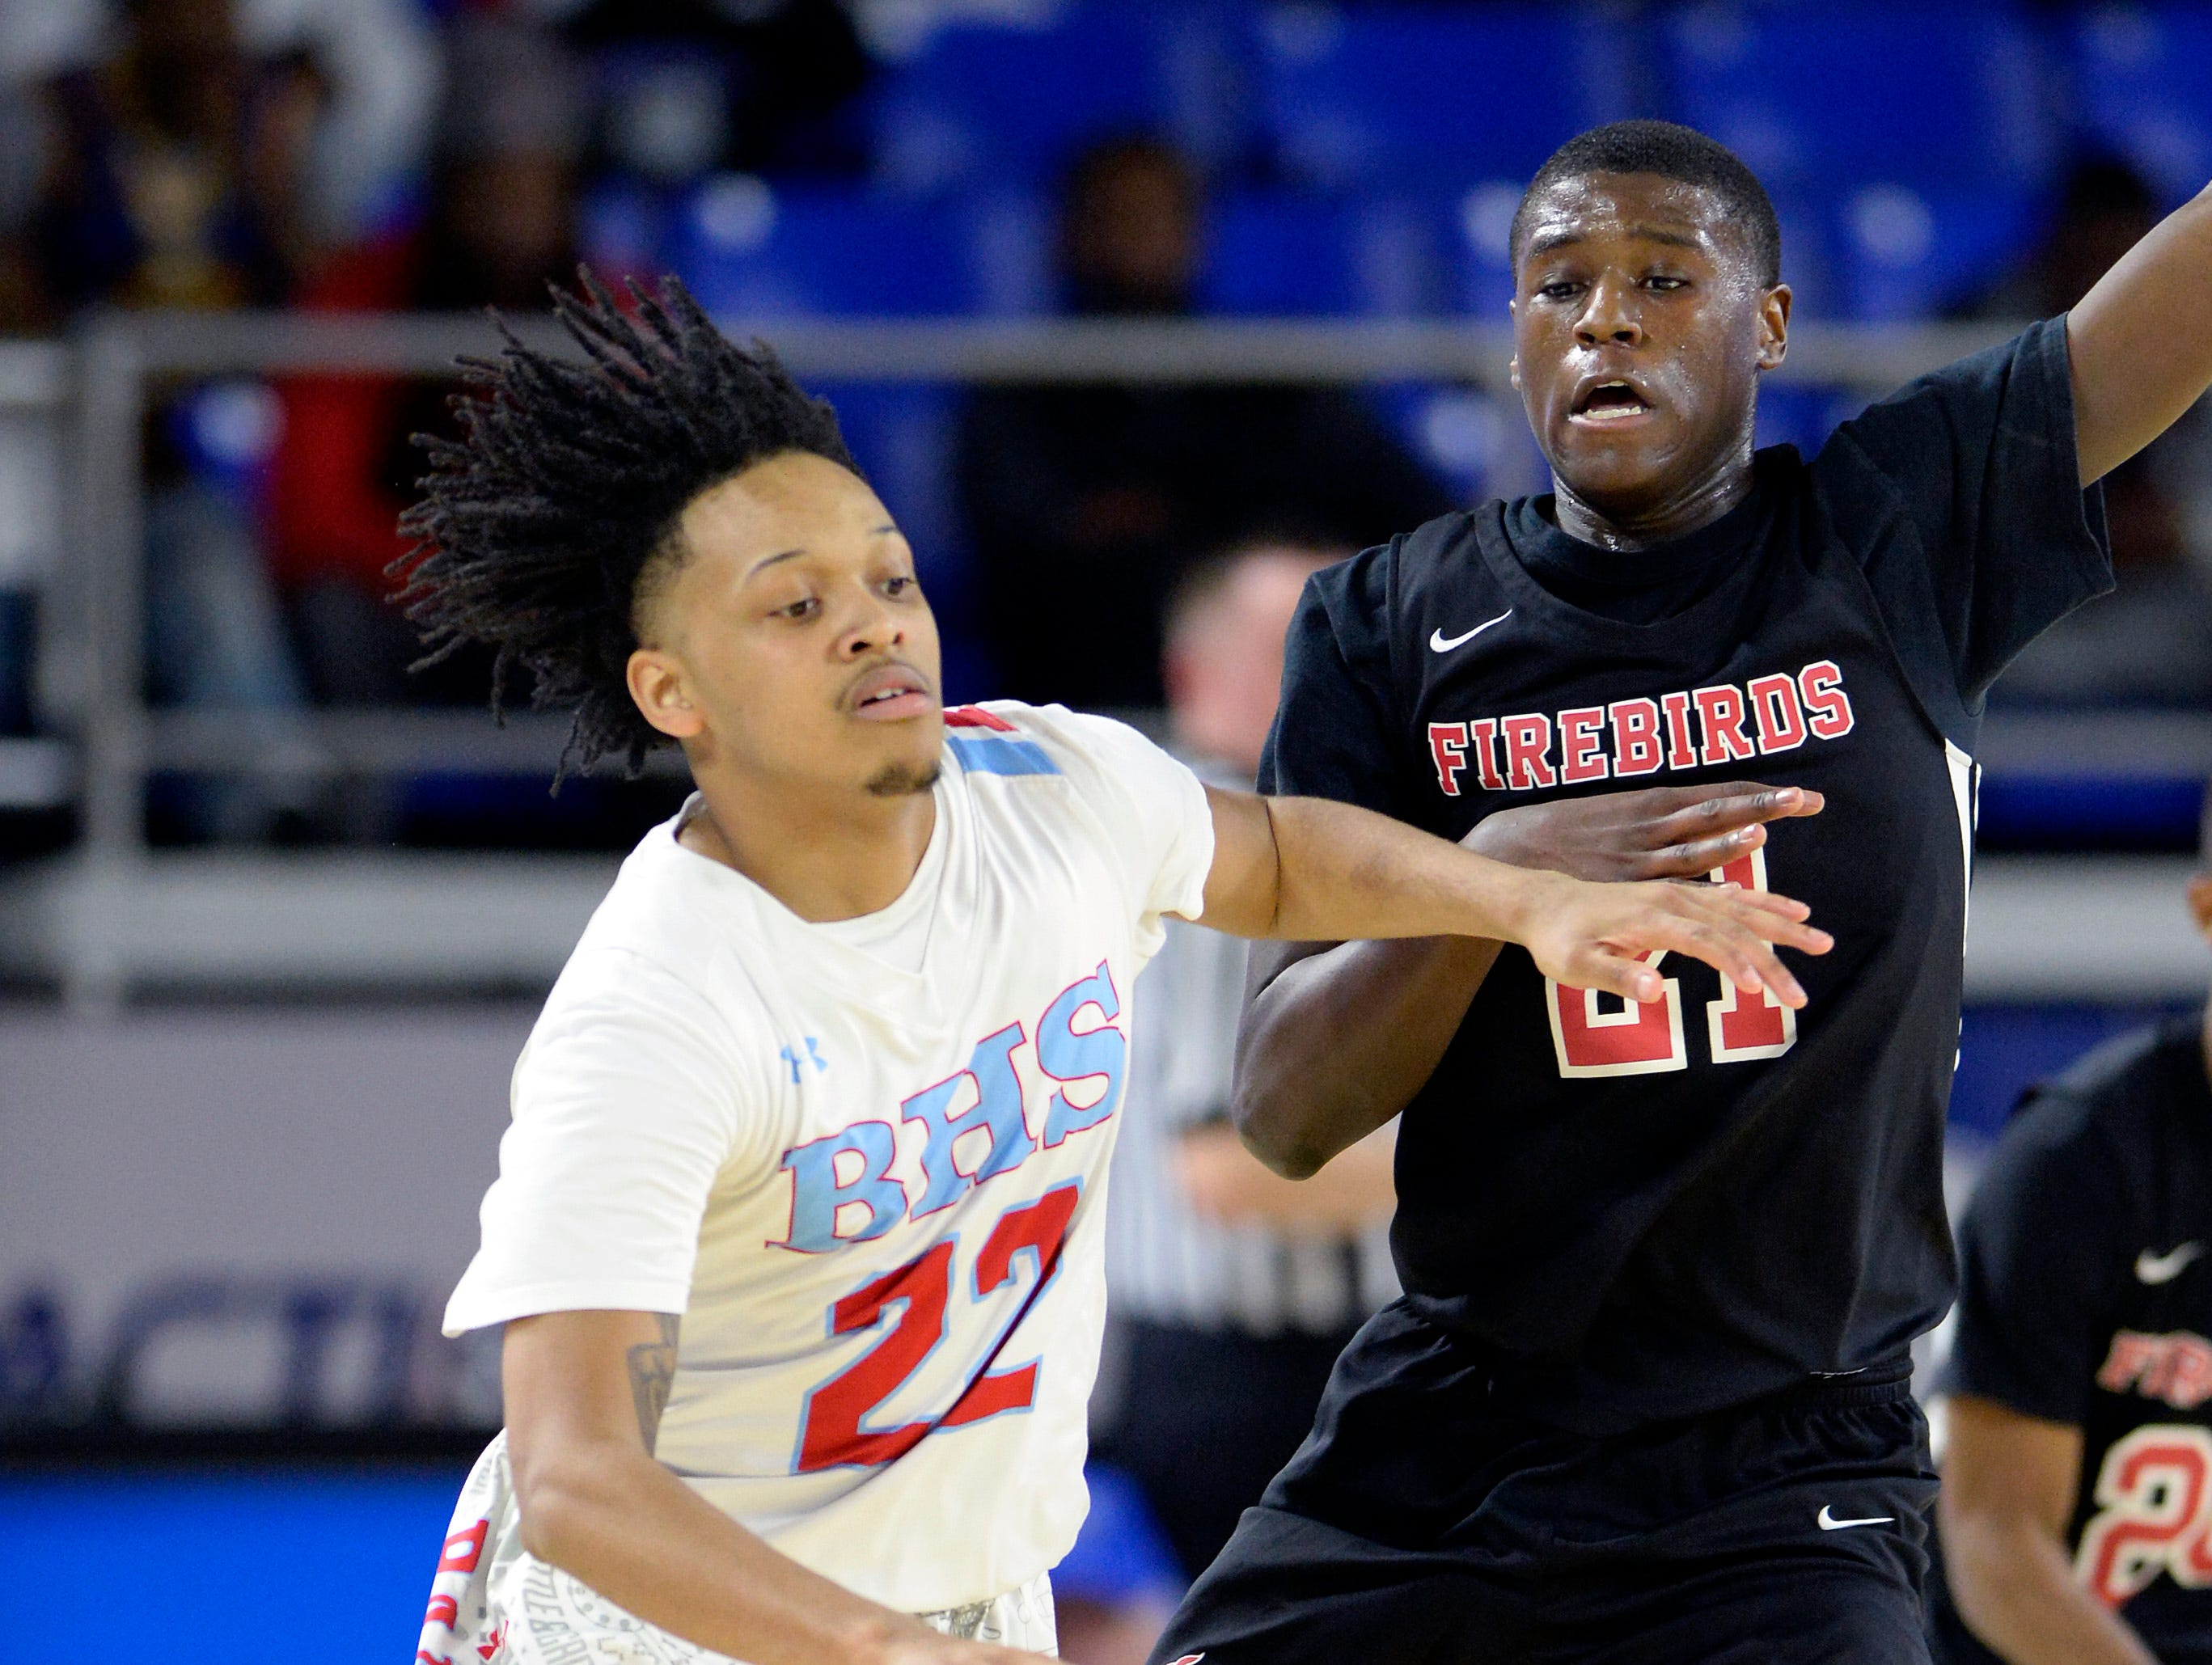 Brainerd guard Cavonte McKibbens (22) drives past Pearl-Cohn guard Antonio Anthony (21) during the first half of an Class AA boys' state basketball quarterfinal game against Brainerd Wednesday, March 13, 2019, in Murfreesboro, Tenn.